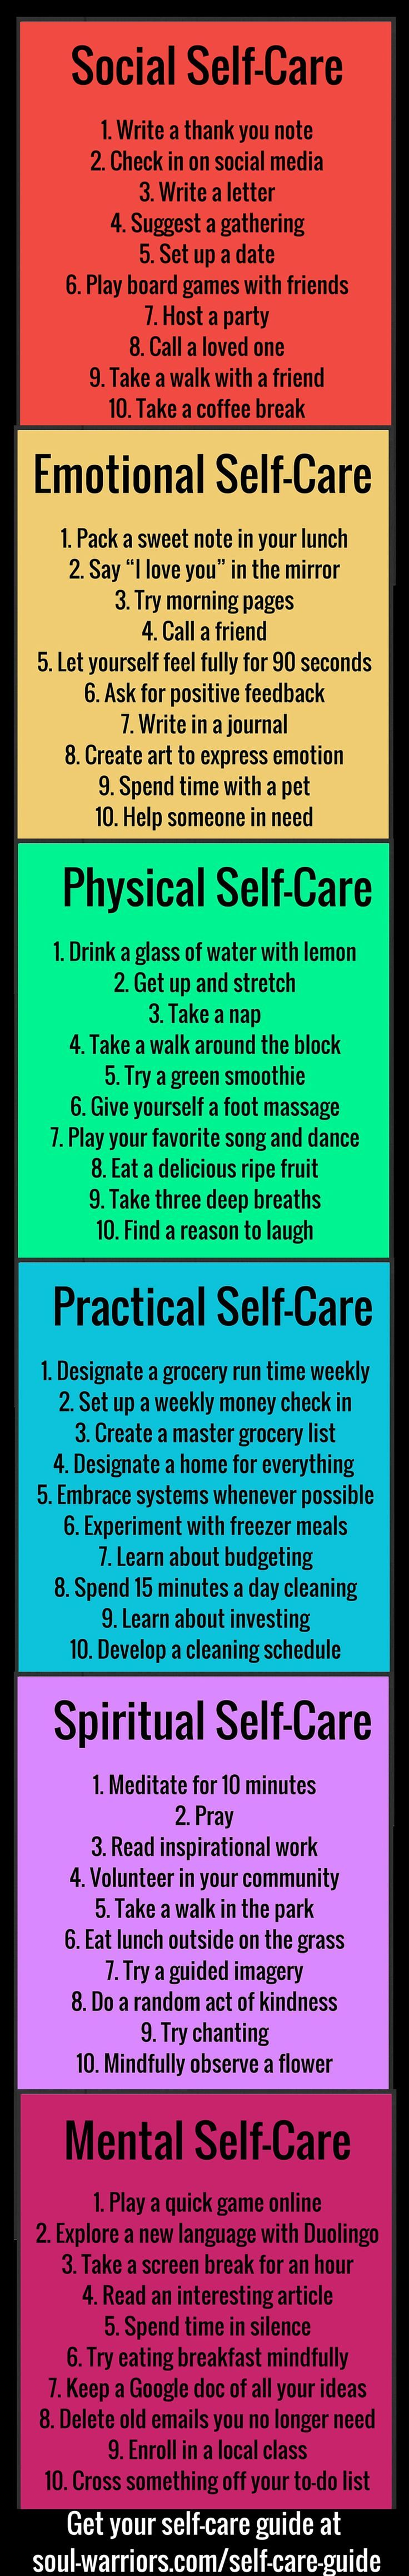 Self care guide free printable free and mental health self care guide soul warriors life design by liz connors sciox Gallery